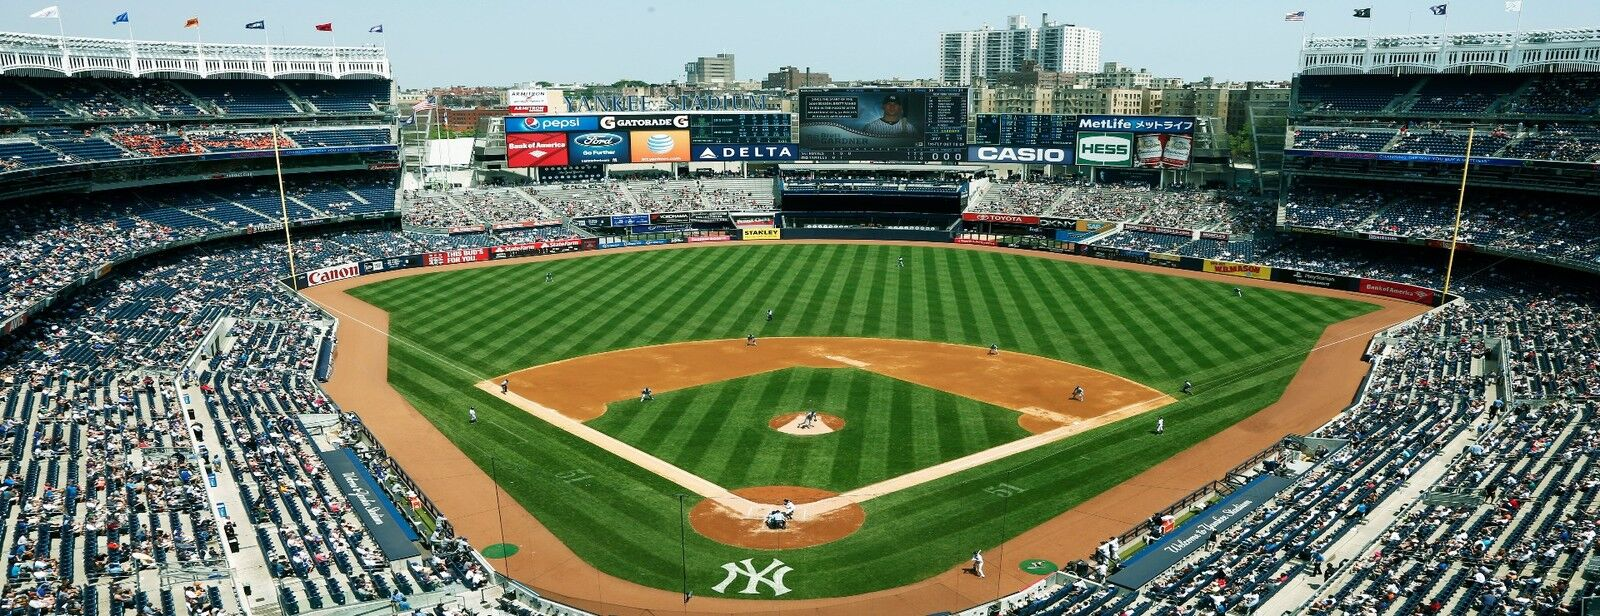 Baltimore Orioles at New York Yankees New York Yankees Tickets (Magnet Schedule Giveaway)